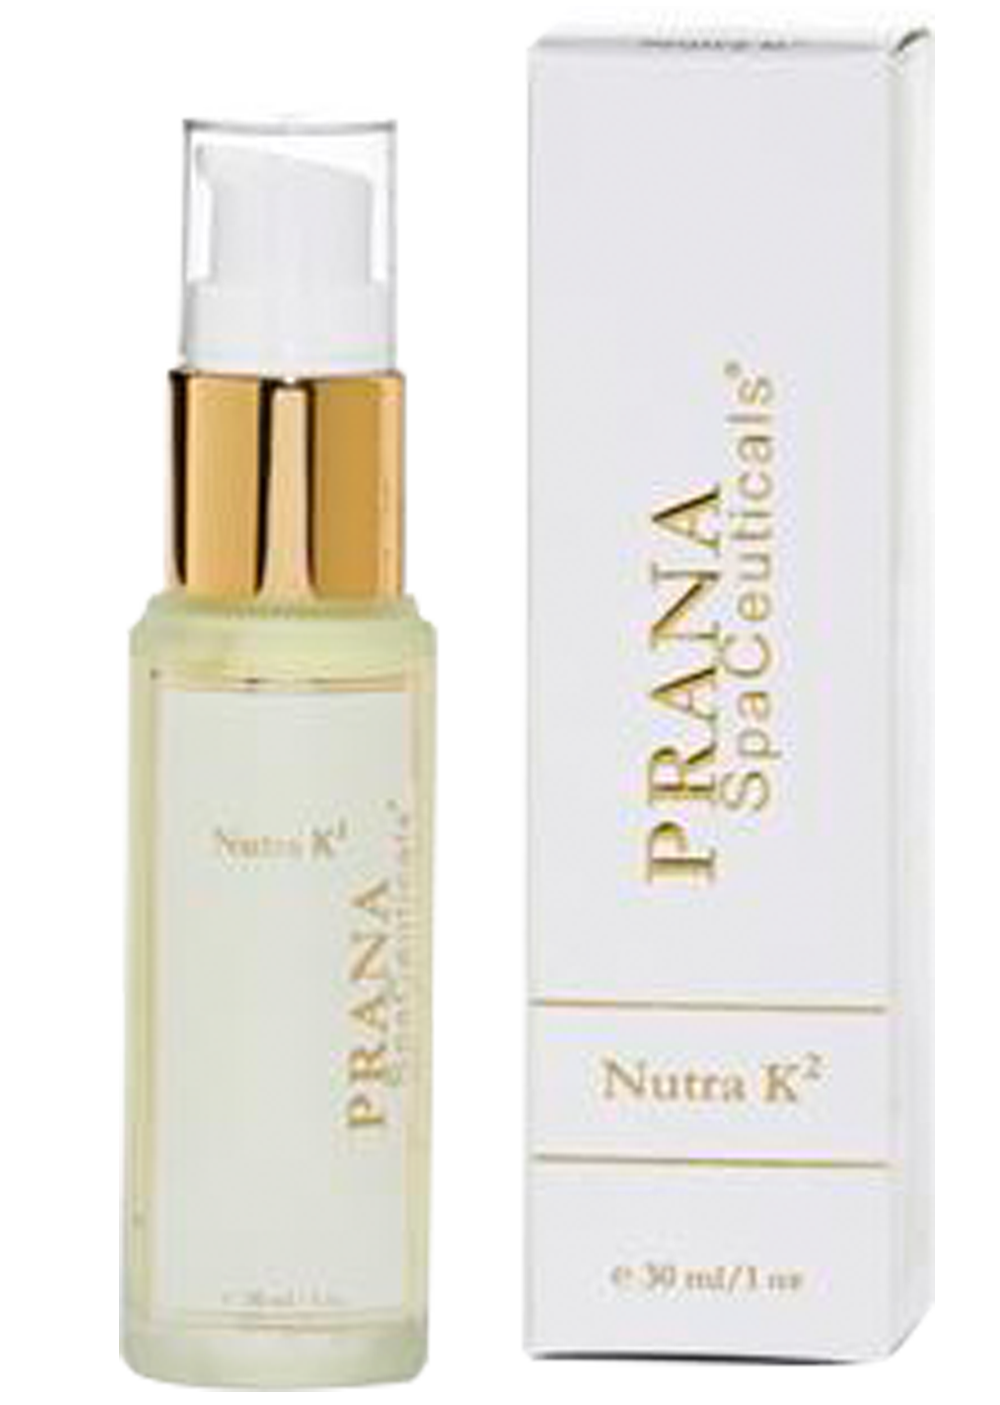 Prana SpaCeuticals Nutra K2 1oz